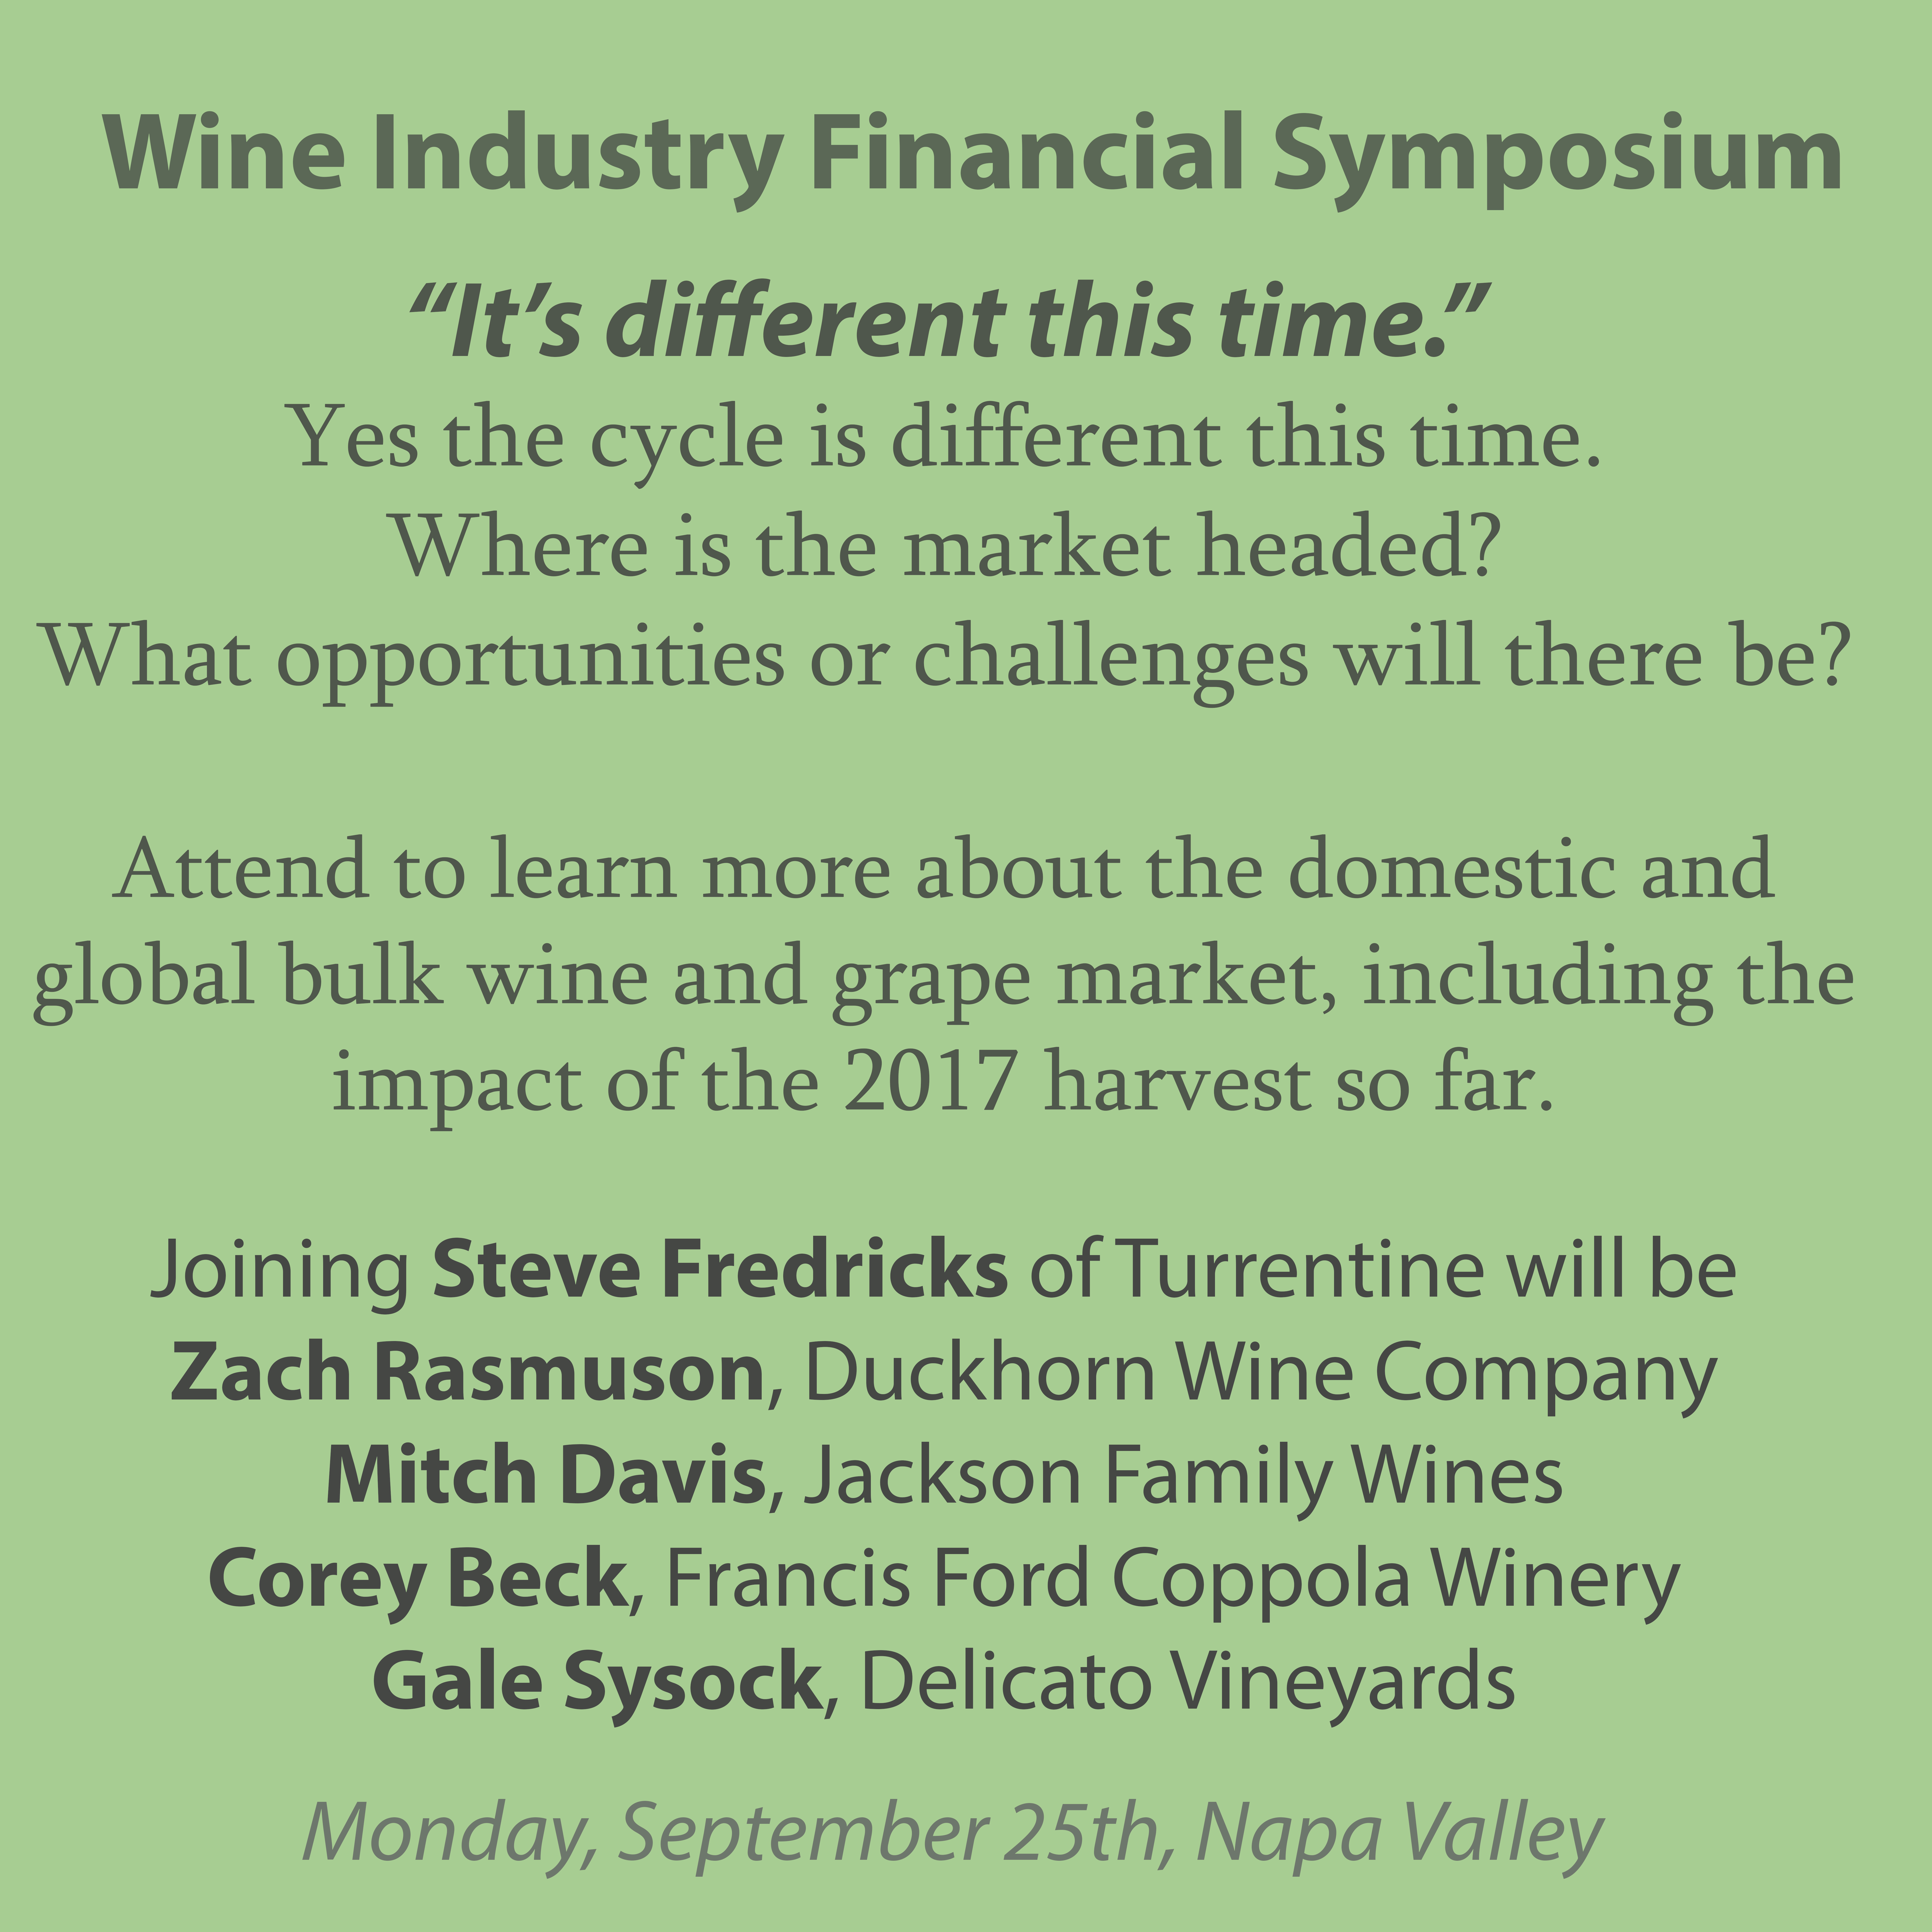 Wine Industry Financial Symposium